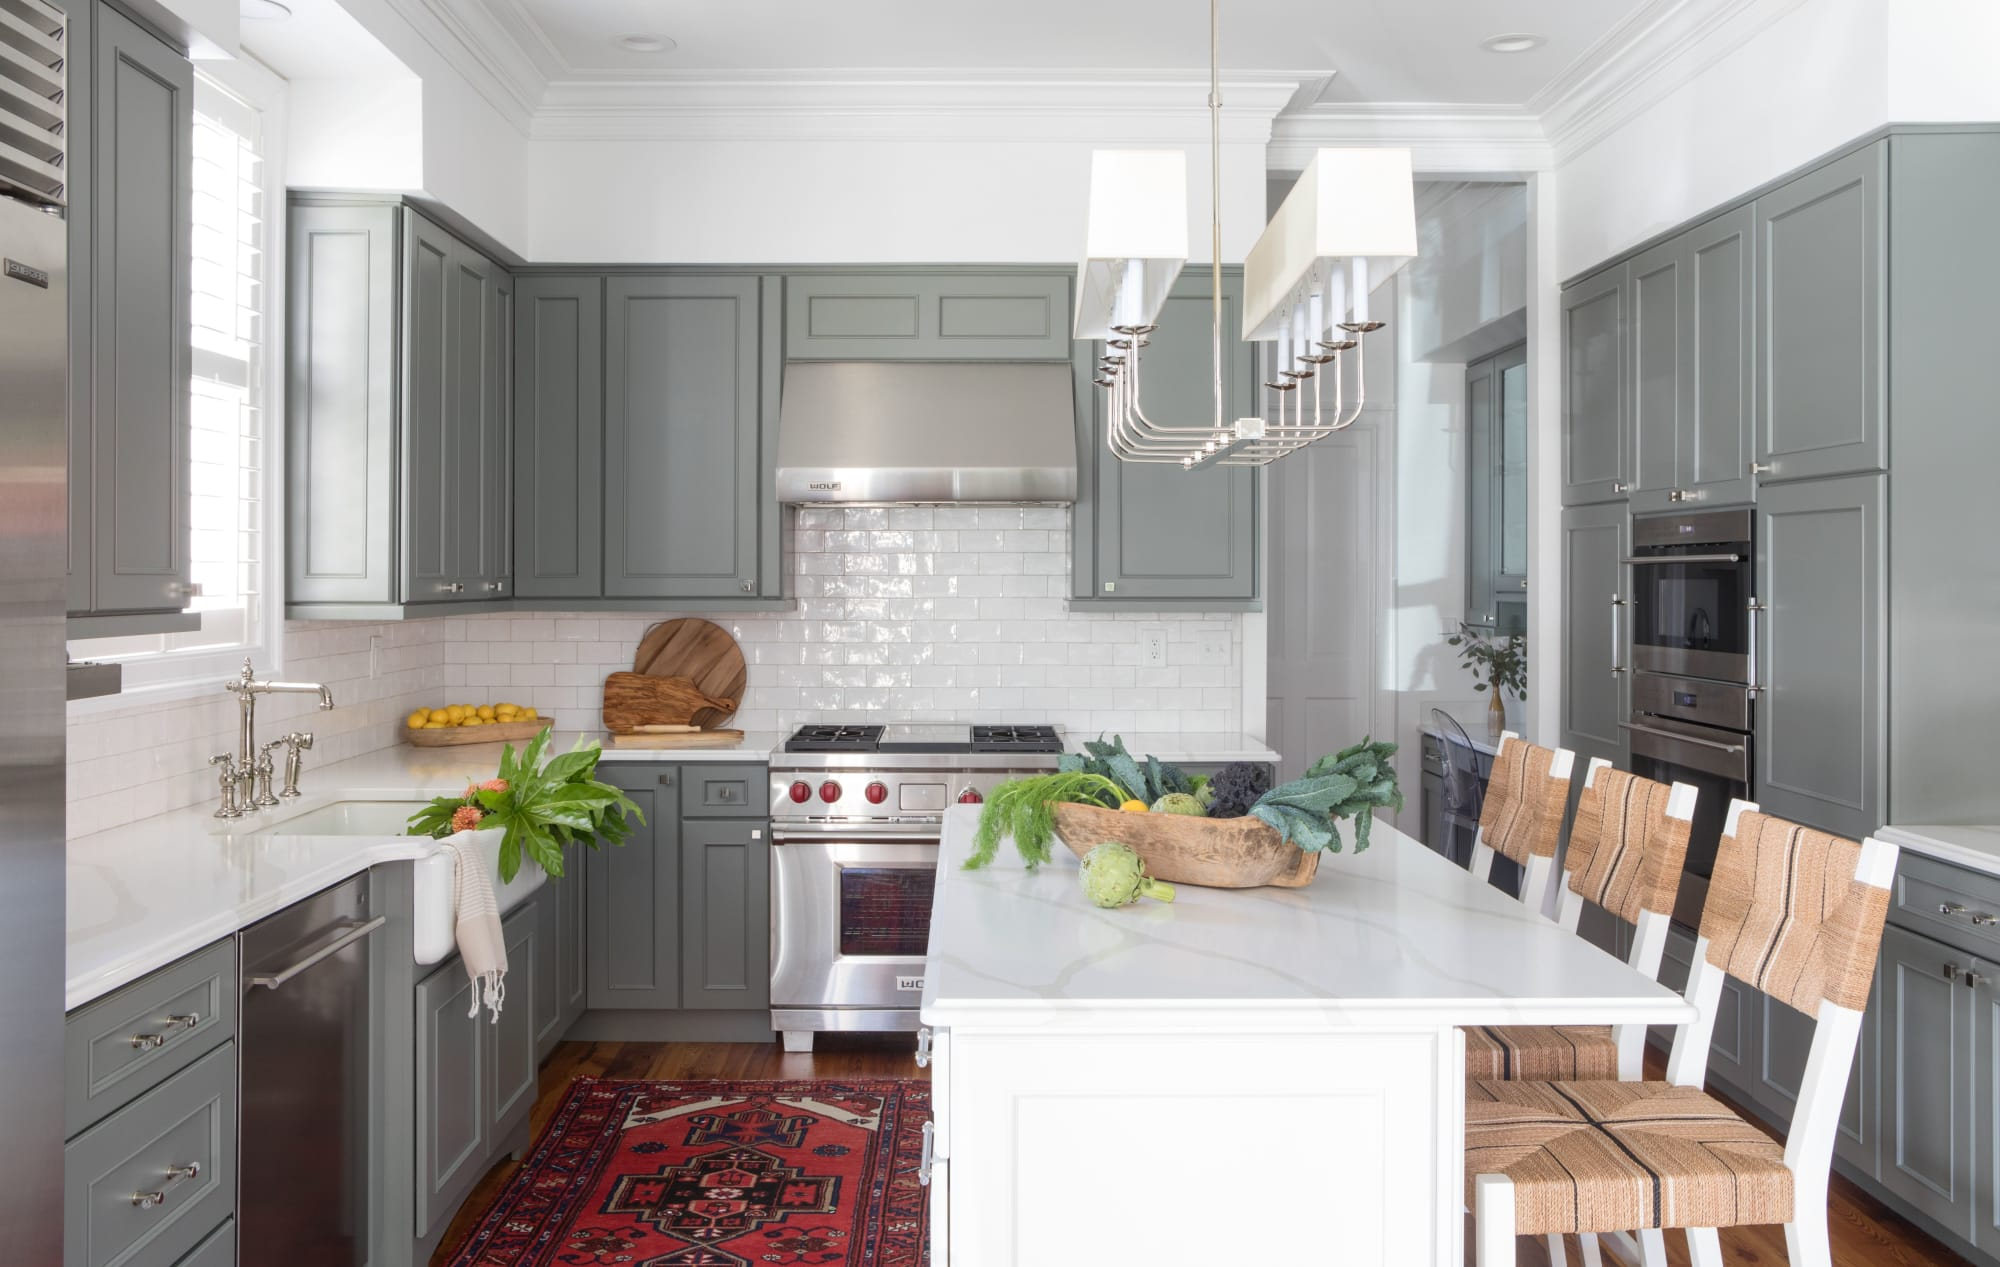 Warm gray and white kitchen cabients